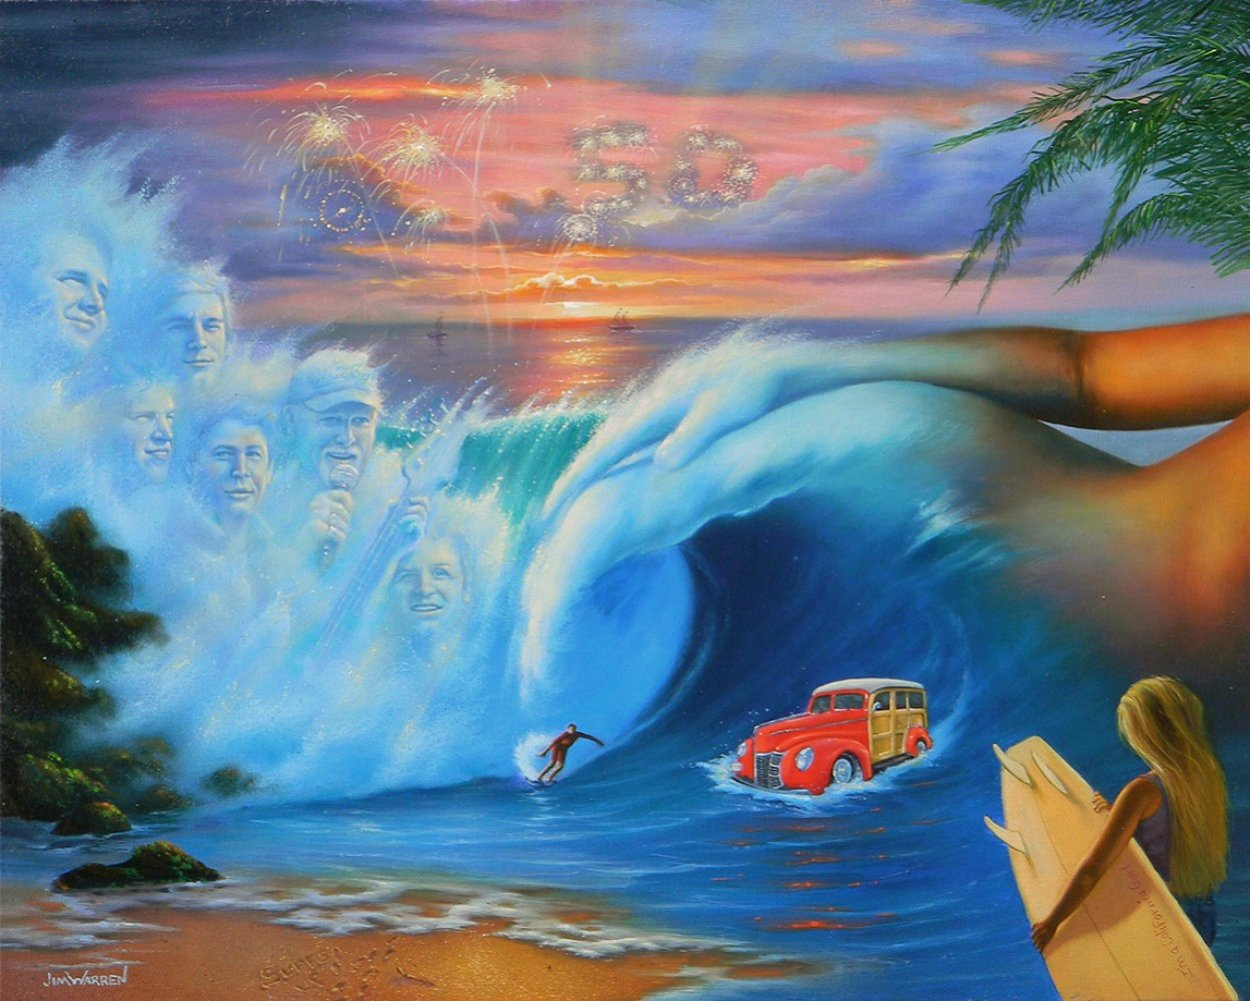 Beach Boys 50th Anniversary 2010  - Rare - Embellished Limited Edition Print by Jim Warren